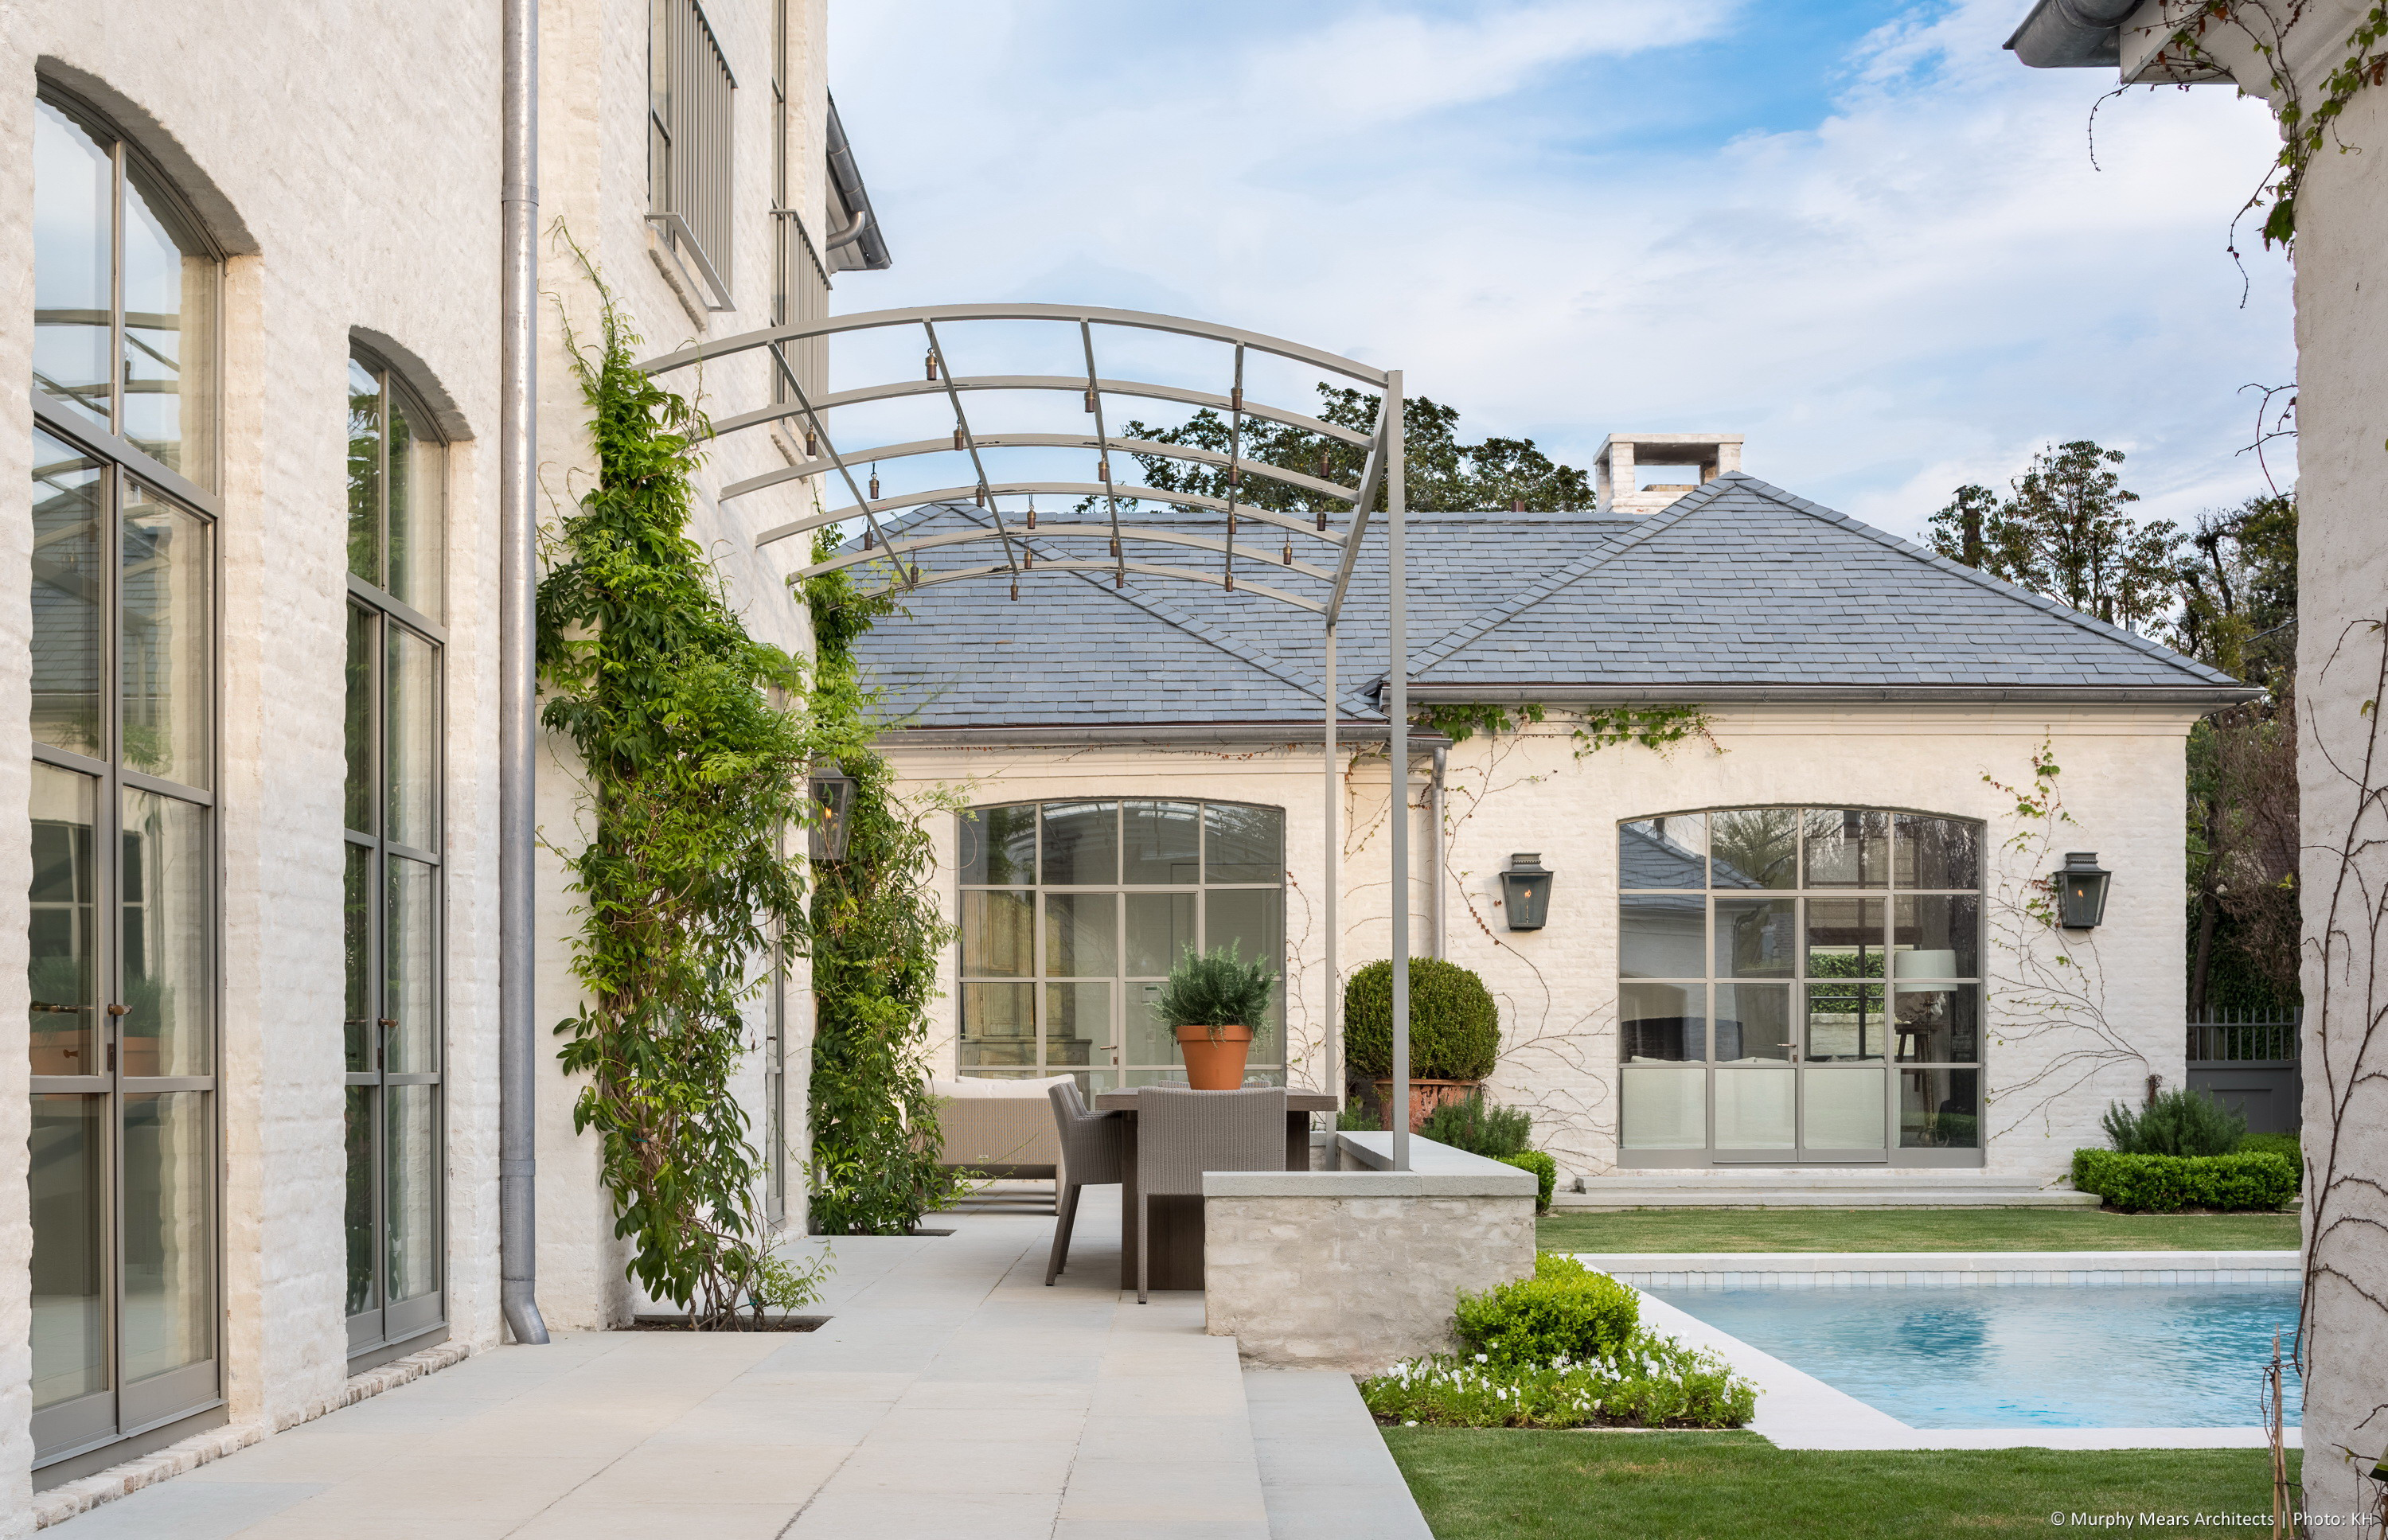 Back terrace with outdoor dining beneath a trellis that will be covered in Boston Ivy, overlooking a soaking pool set within a Zoysia lawn.